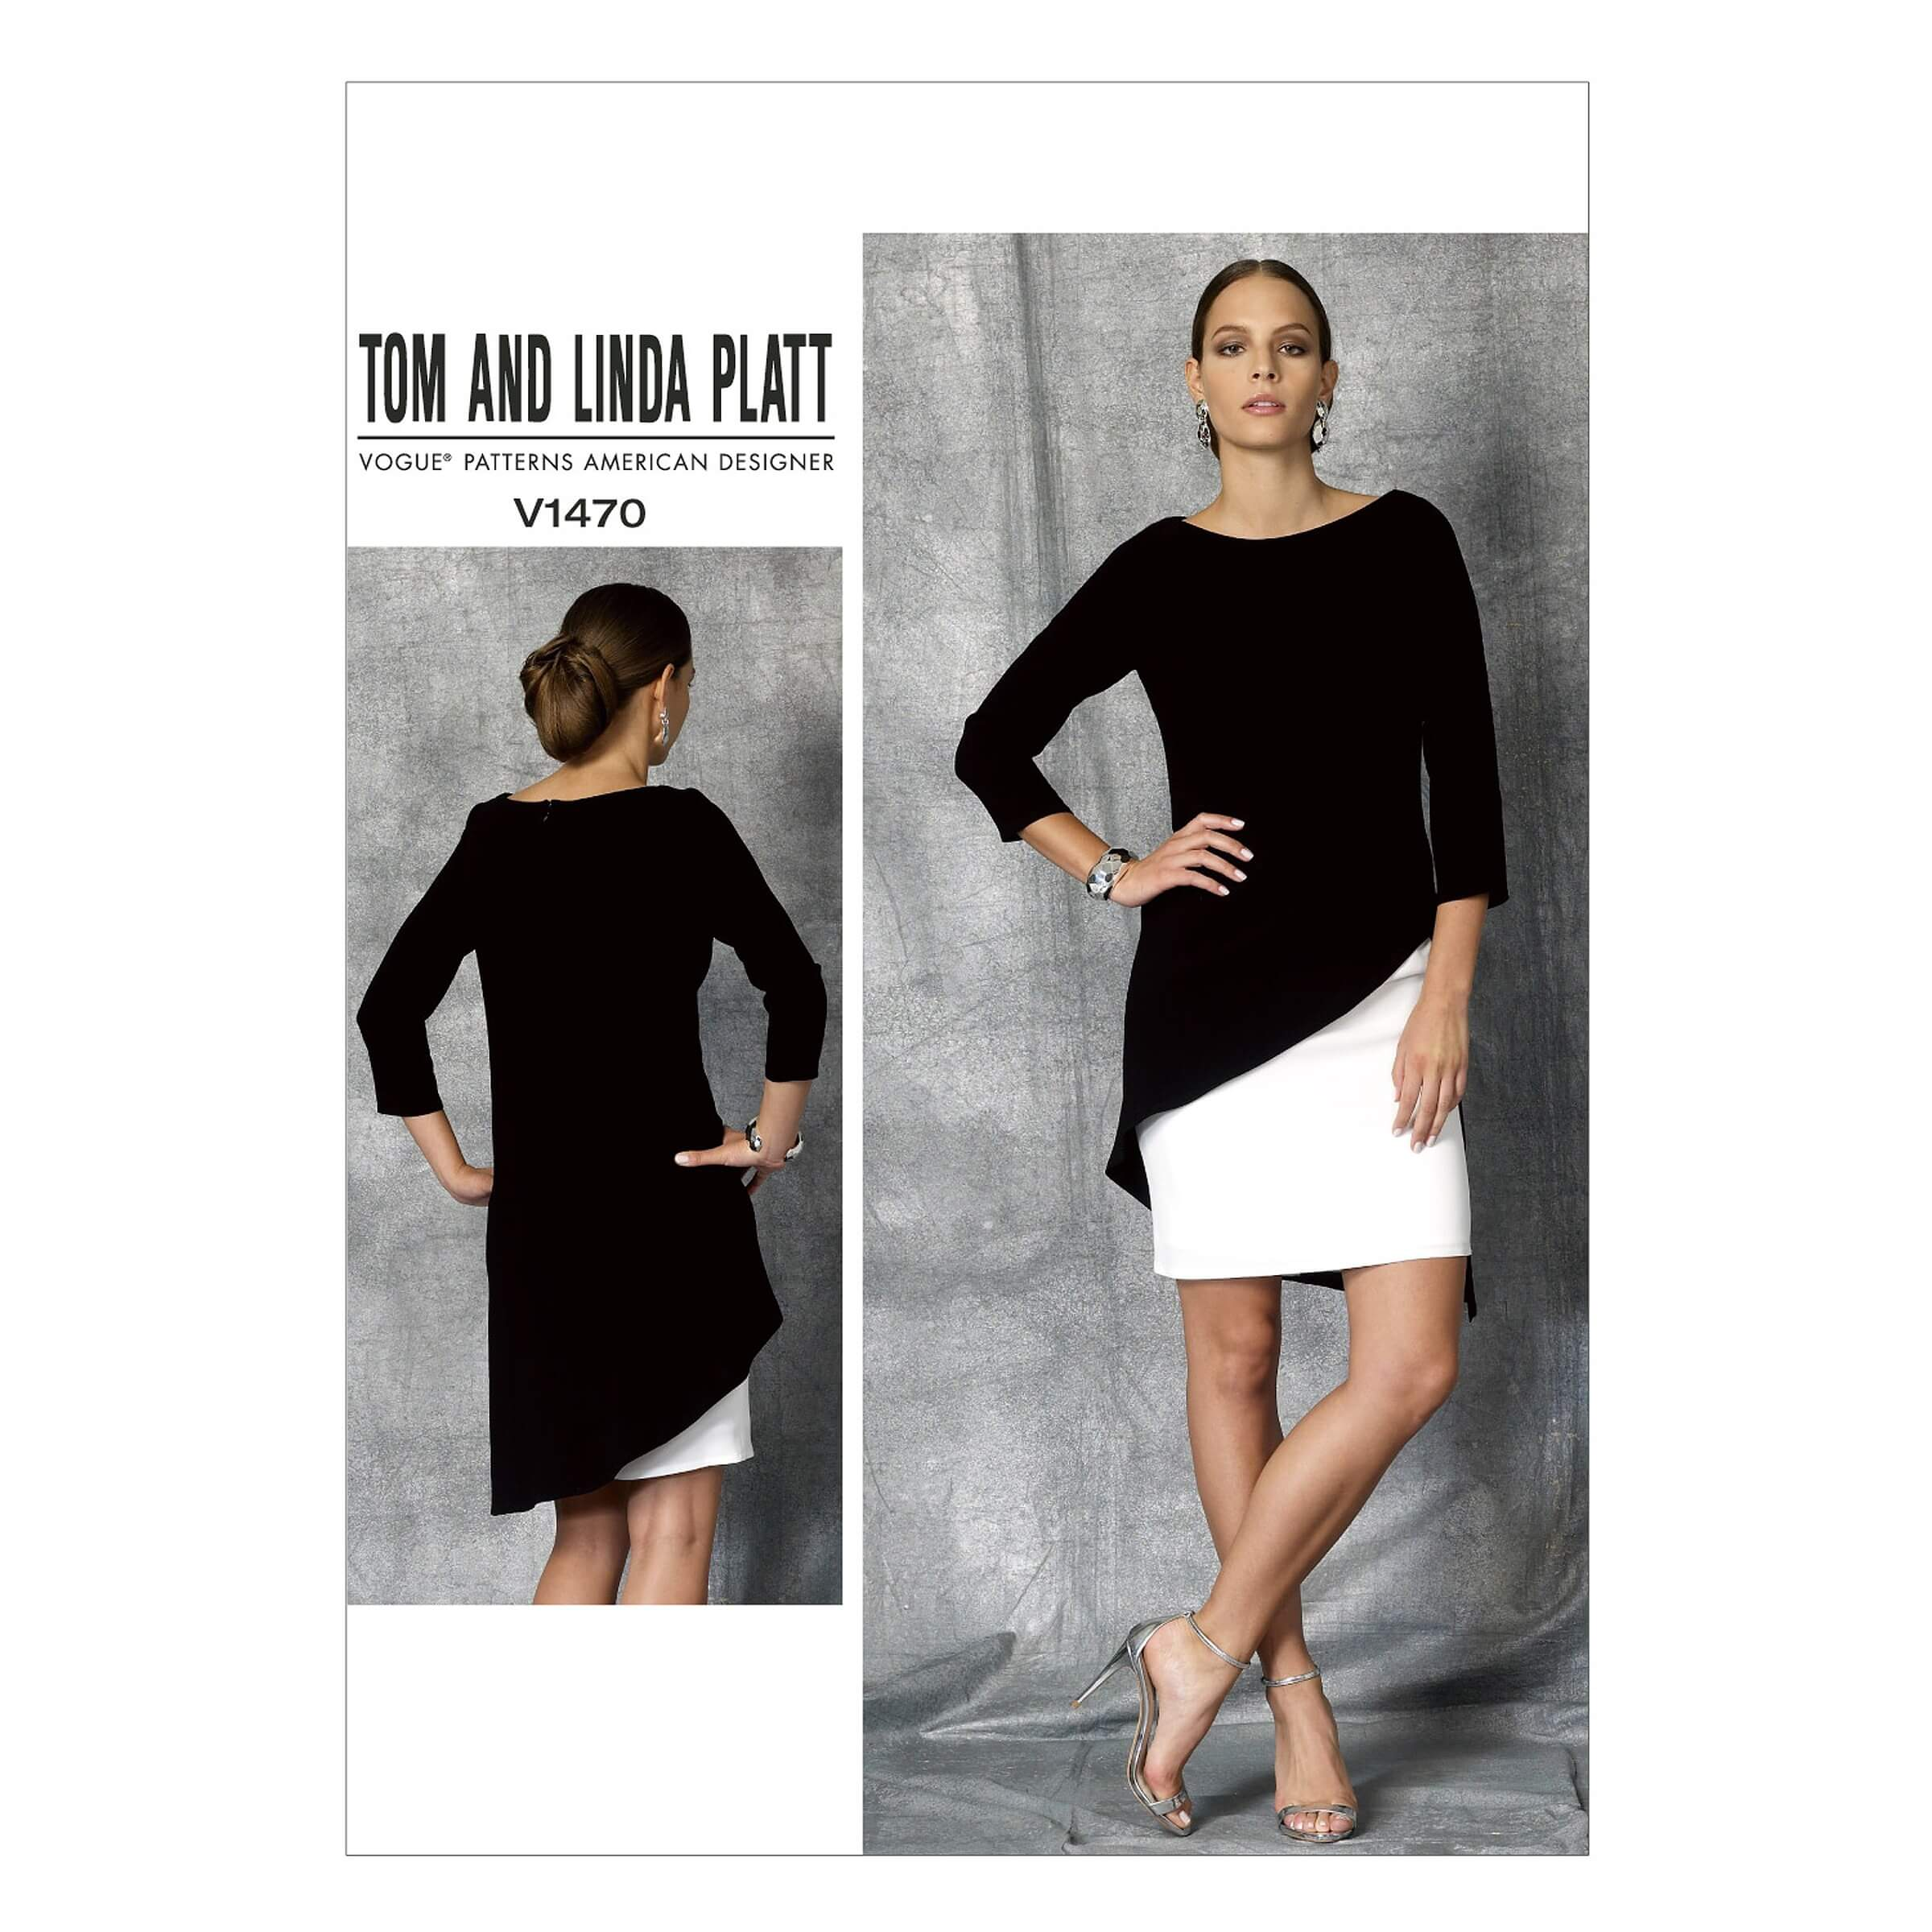 Vogue Sewing Pattern V1470 Women's Dress with Two Tone Asymmetric Overlay